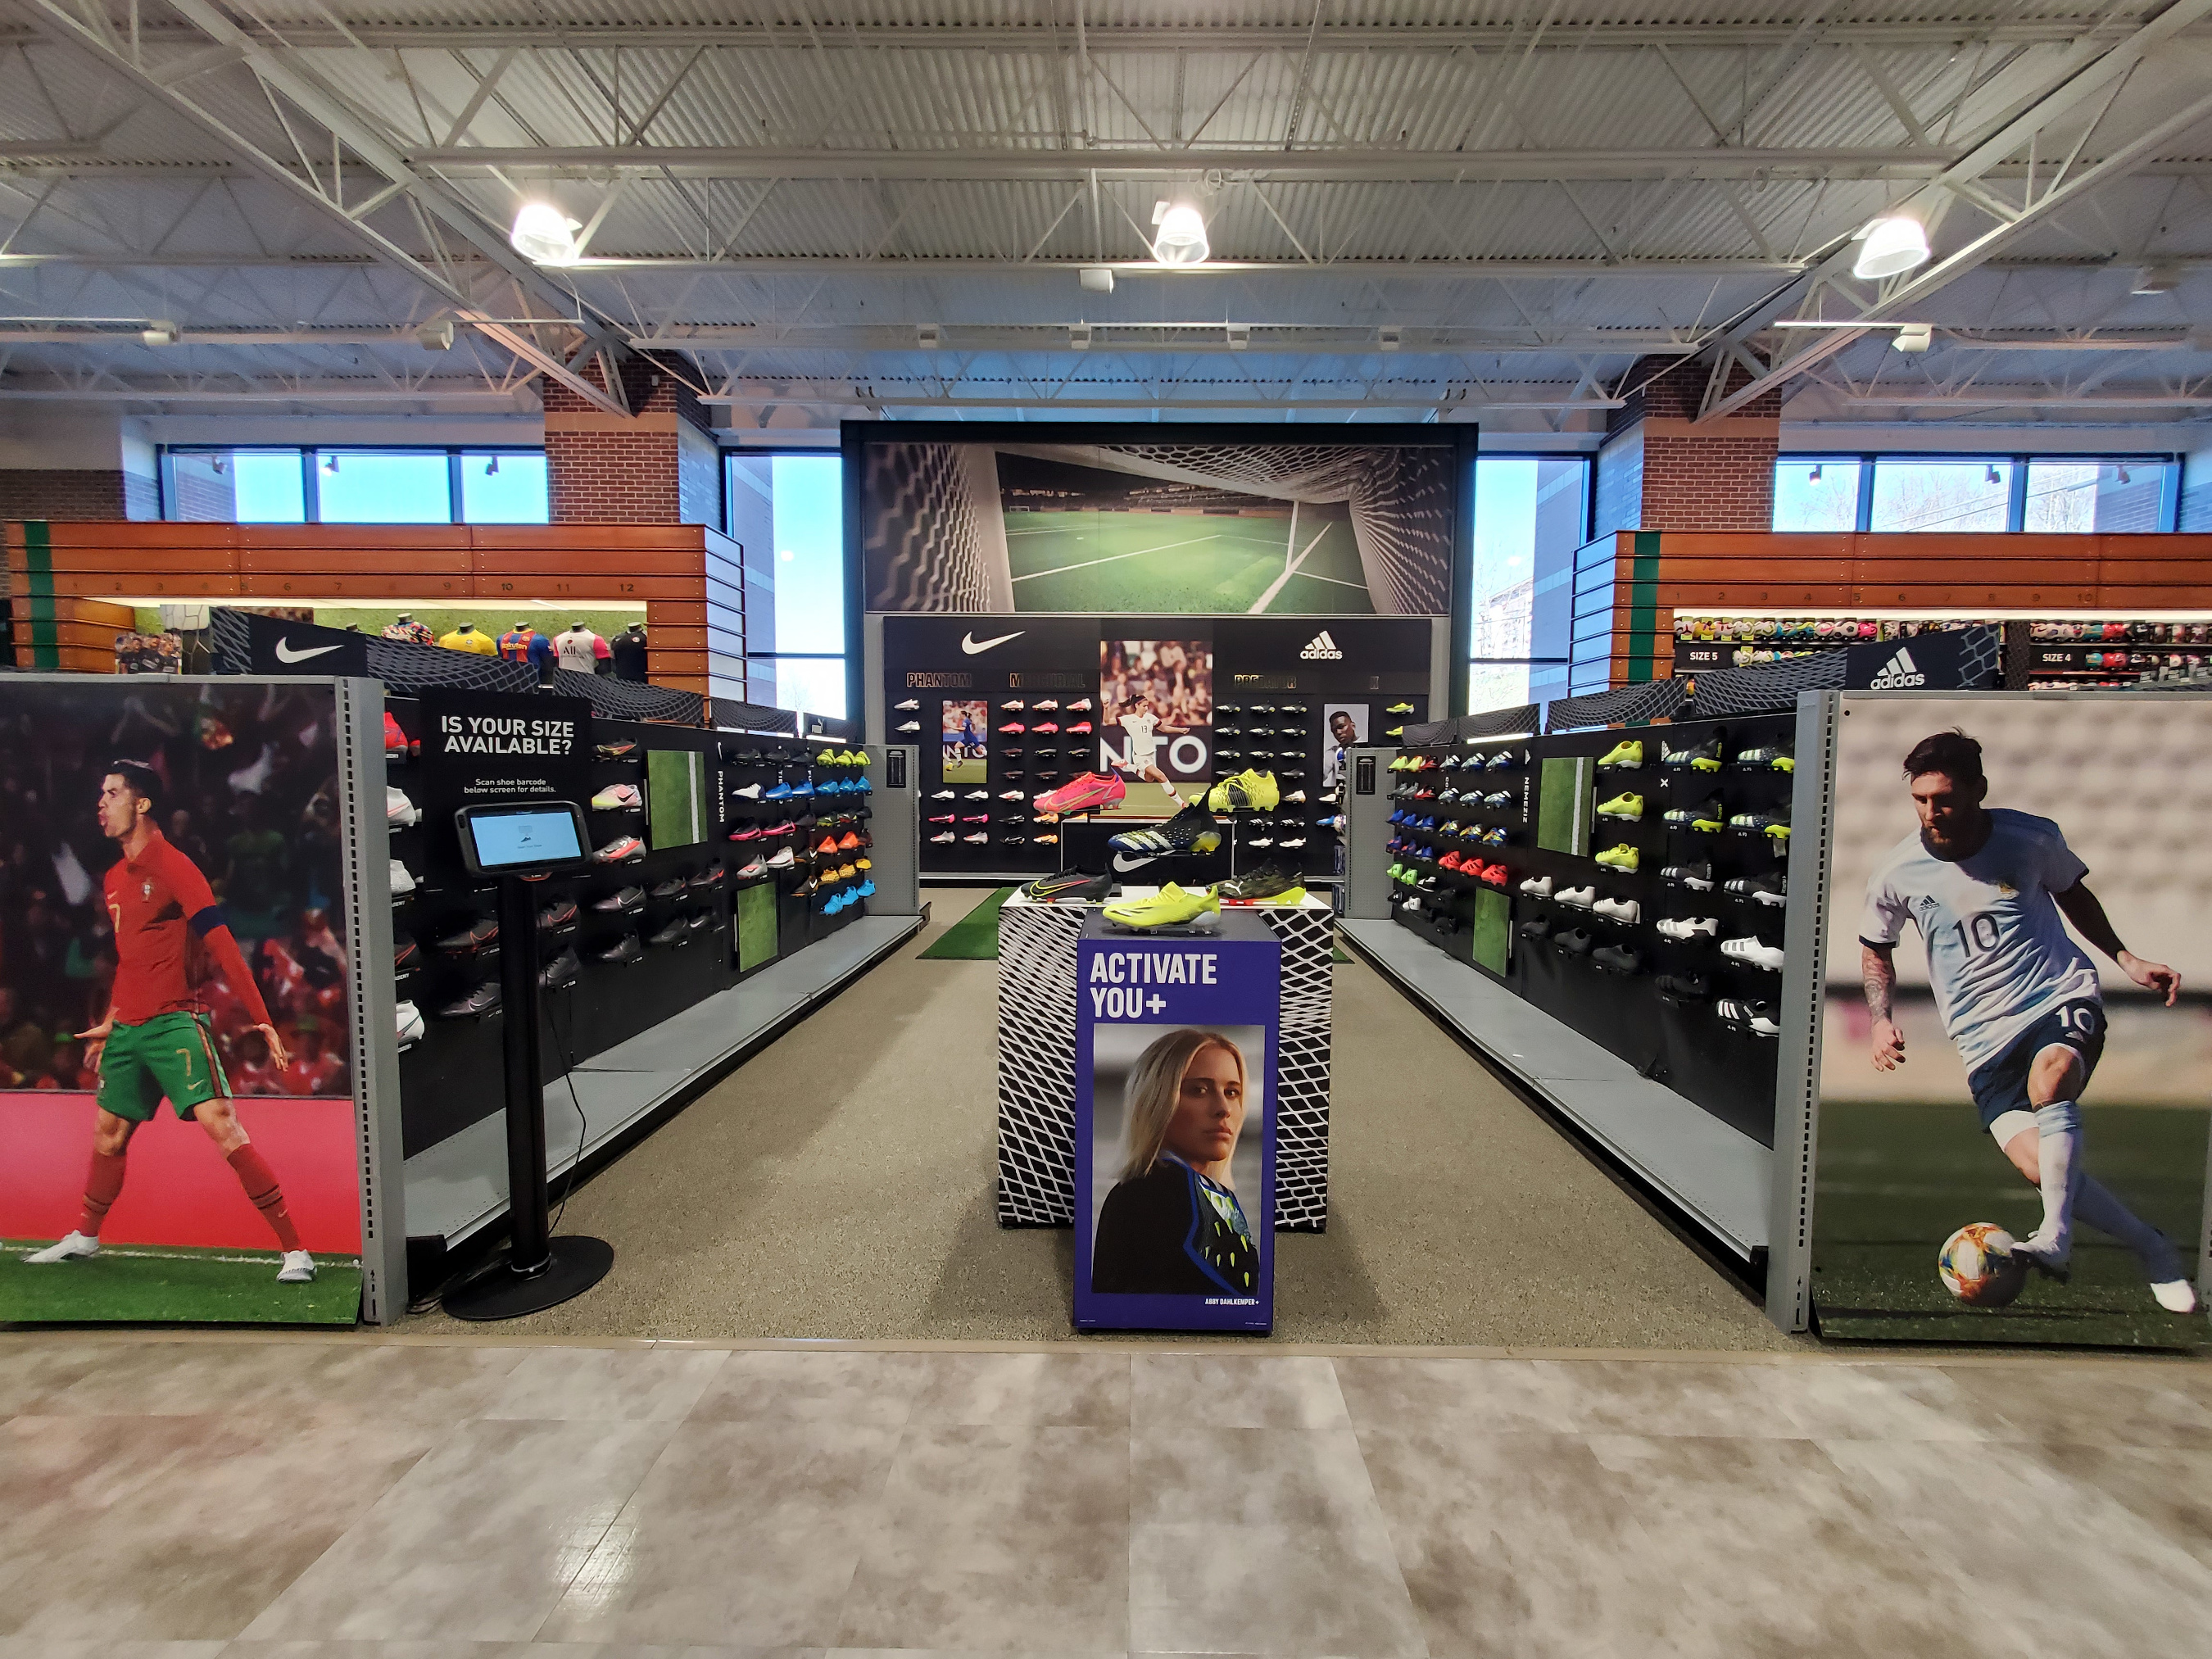 DICK'S Sporting Goods Announces Grand Opening of New Concept Store 'DICK'S House of Sport' And Expands Offerings in Select Golf Galaxy Locations Nationwide - DICK'S Soccer Shops